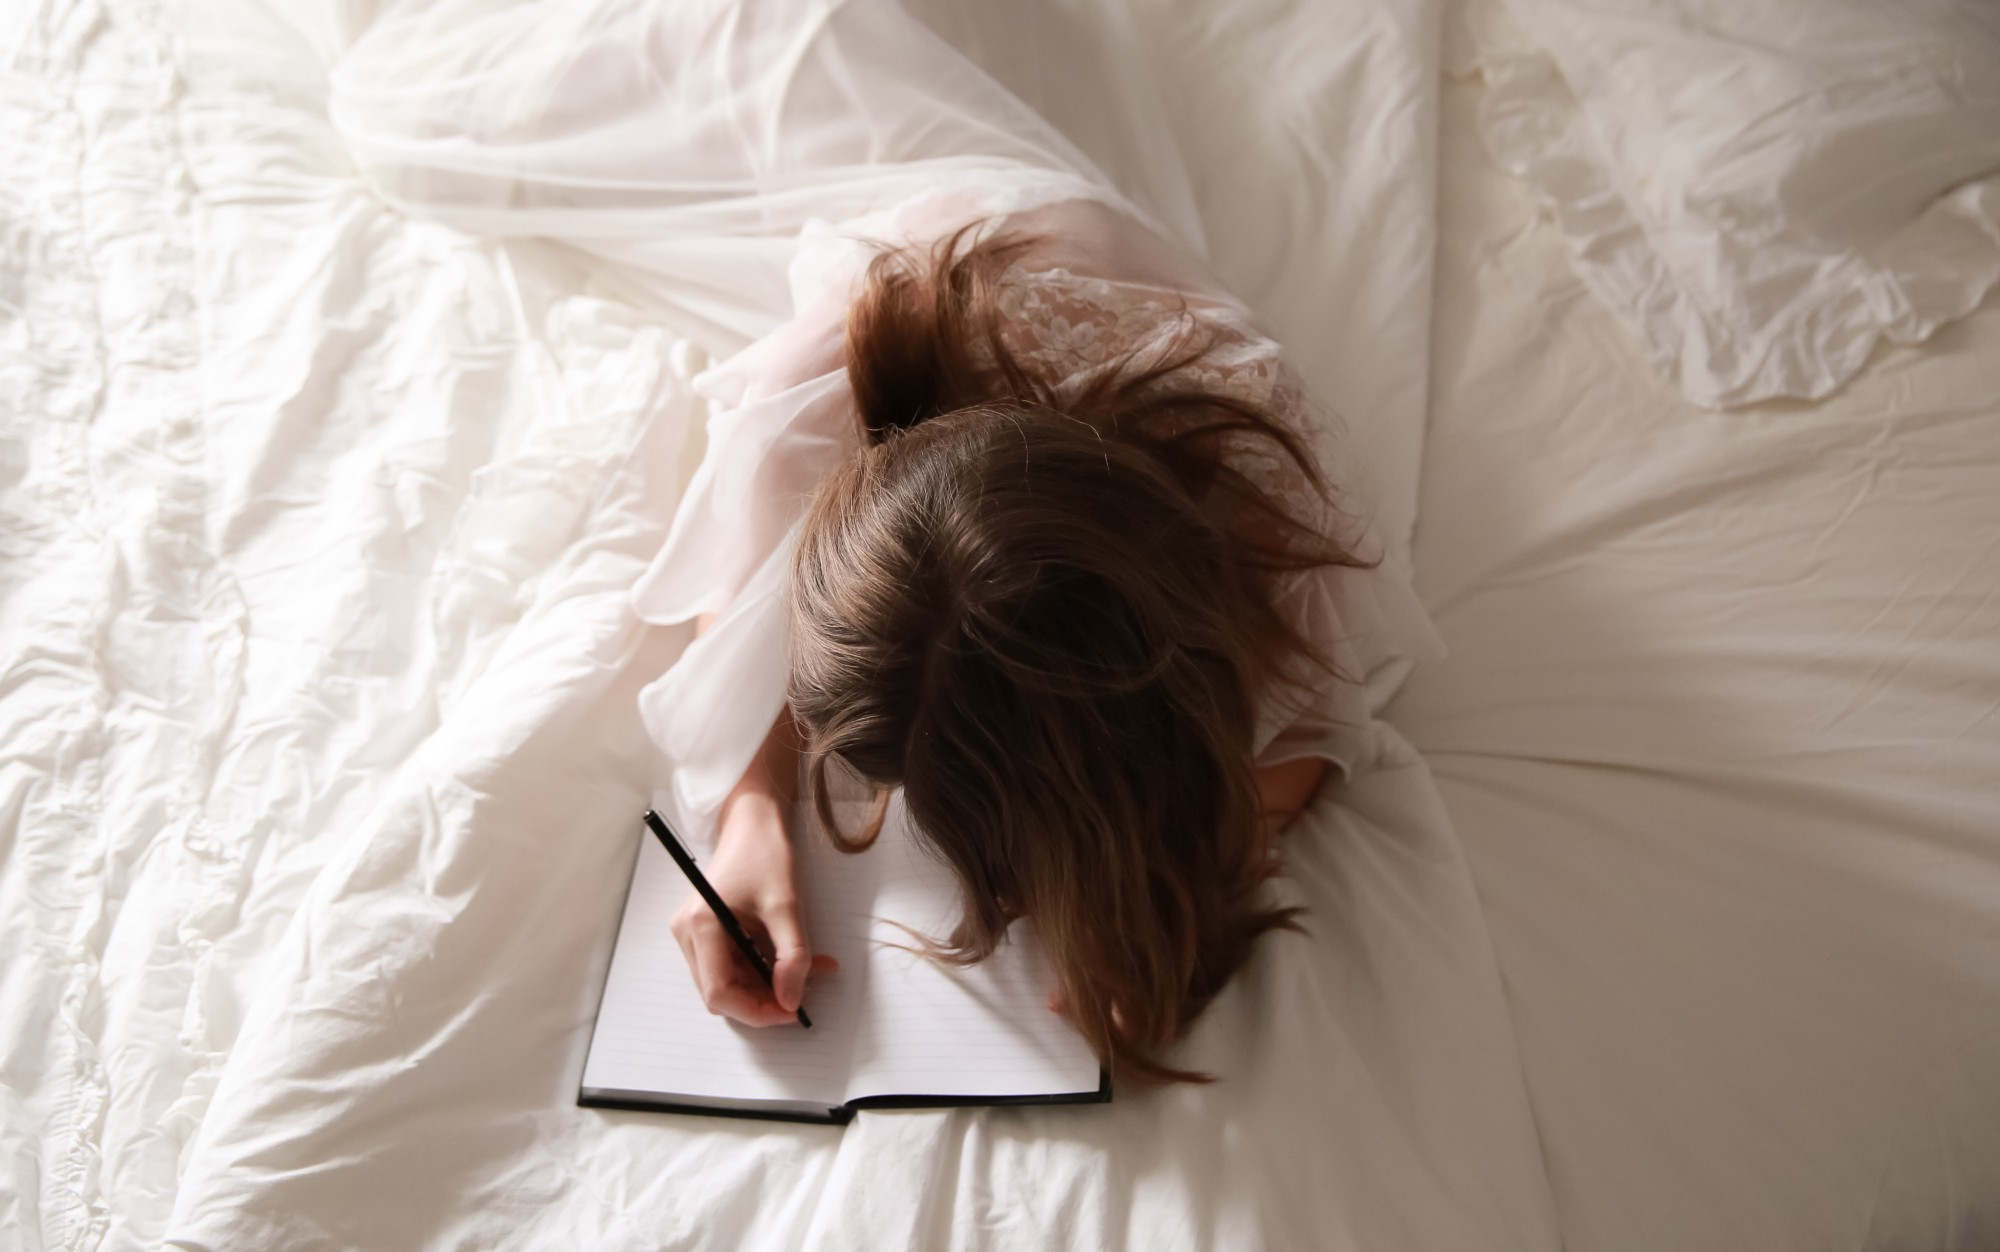 A woman lays in white sheets, writing a letter.